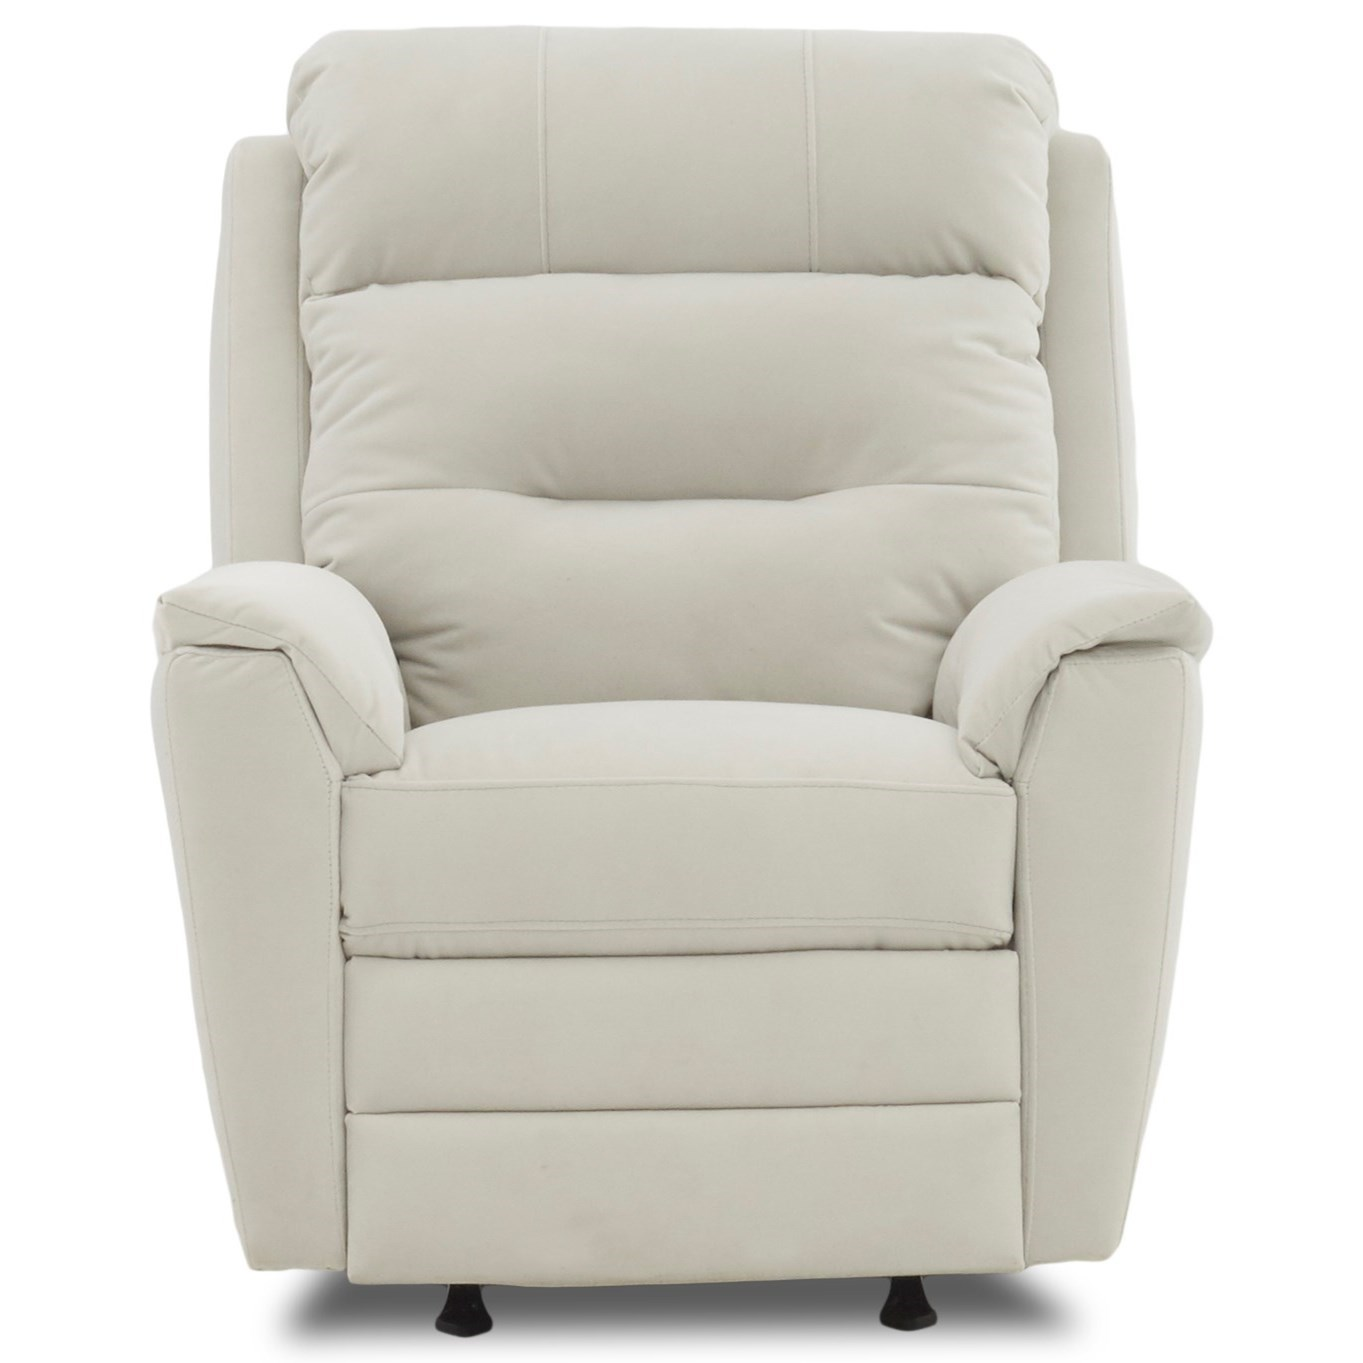 Power Rocking Recliner with Power Headrest